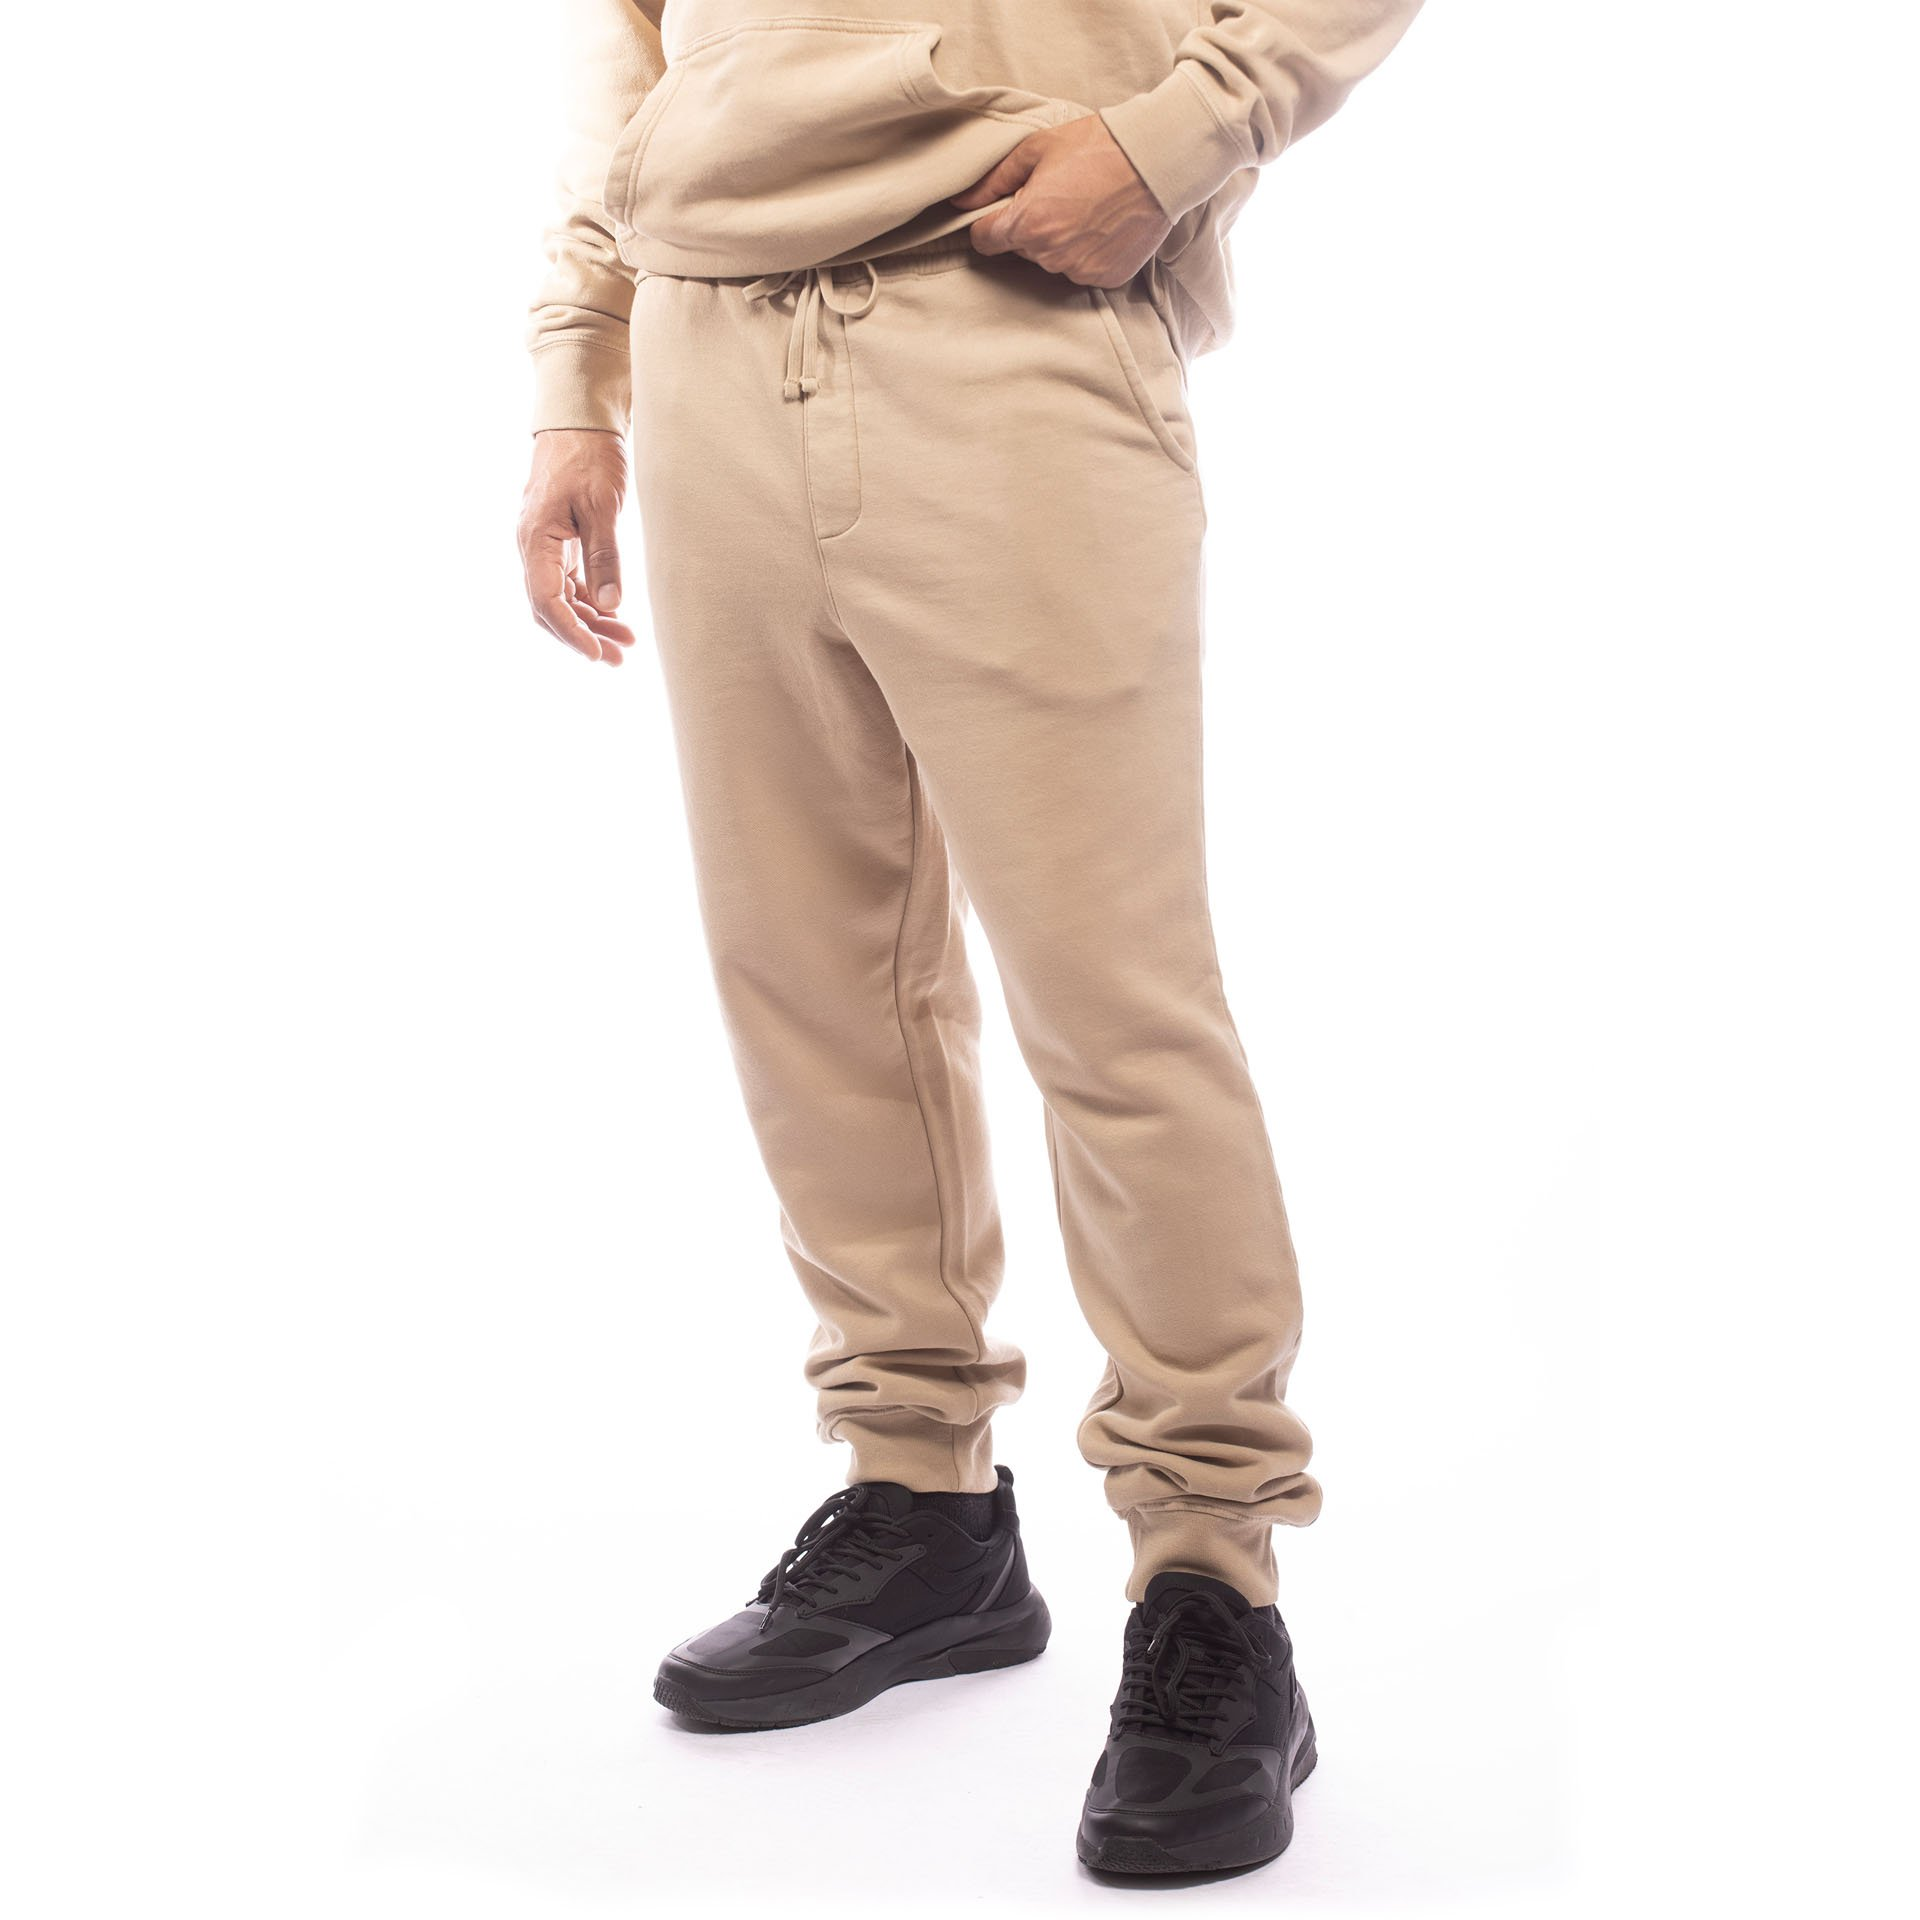 Unisex Upcycled Jogger - Made For The People - Brown